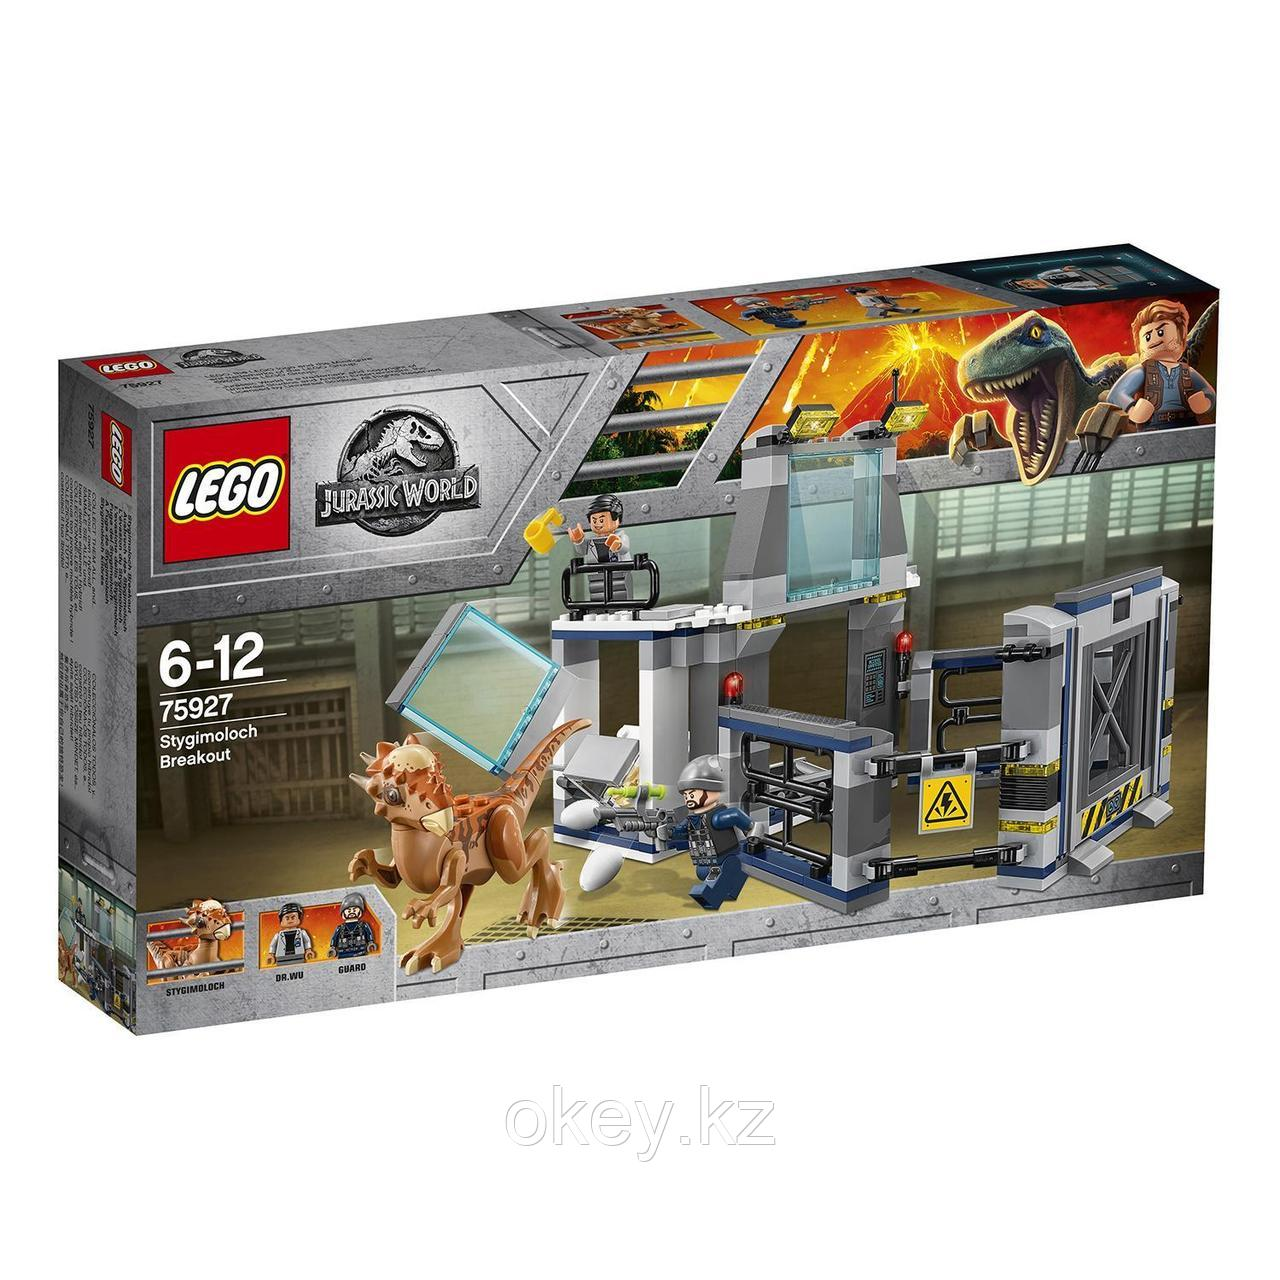 LEGO Jurassic World: Побег стигимолоха из лаборатории 75927